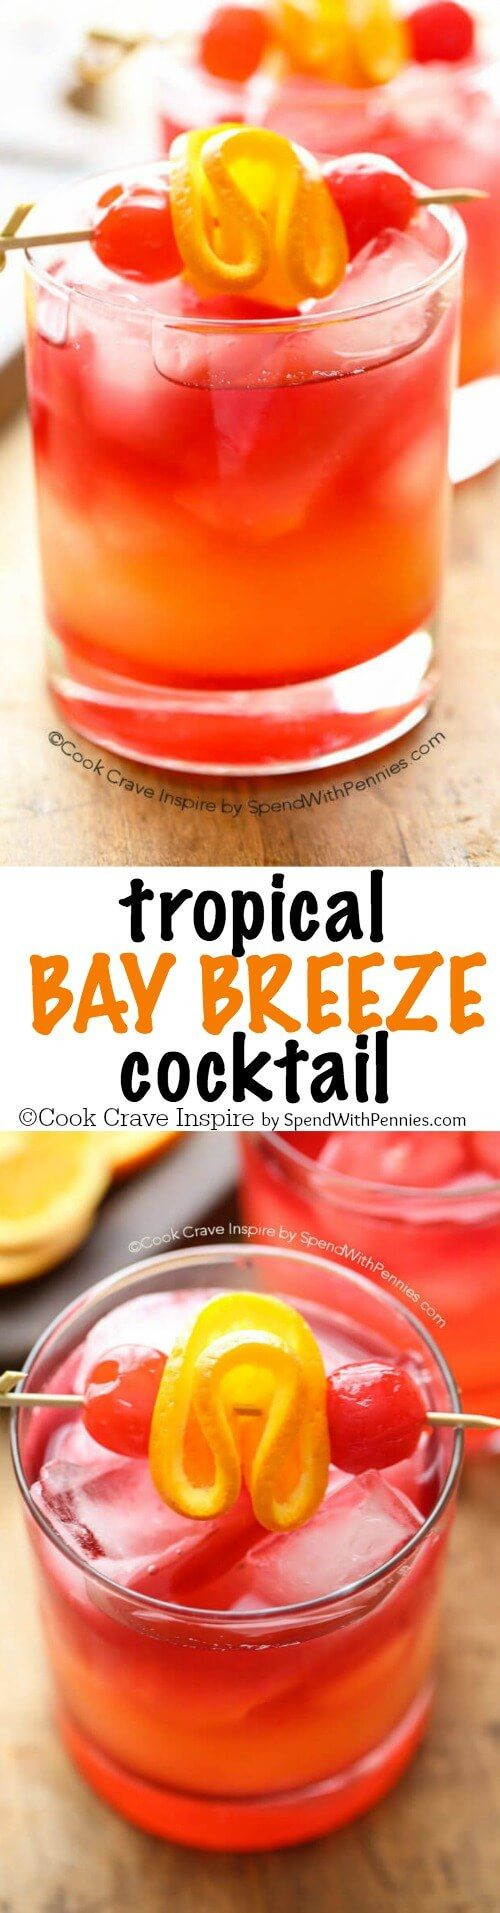 Easy Rum Drinks  Tropical Bay Breeze Cocktail Recipe